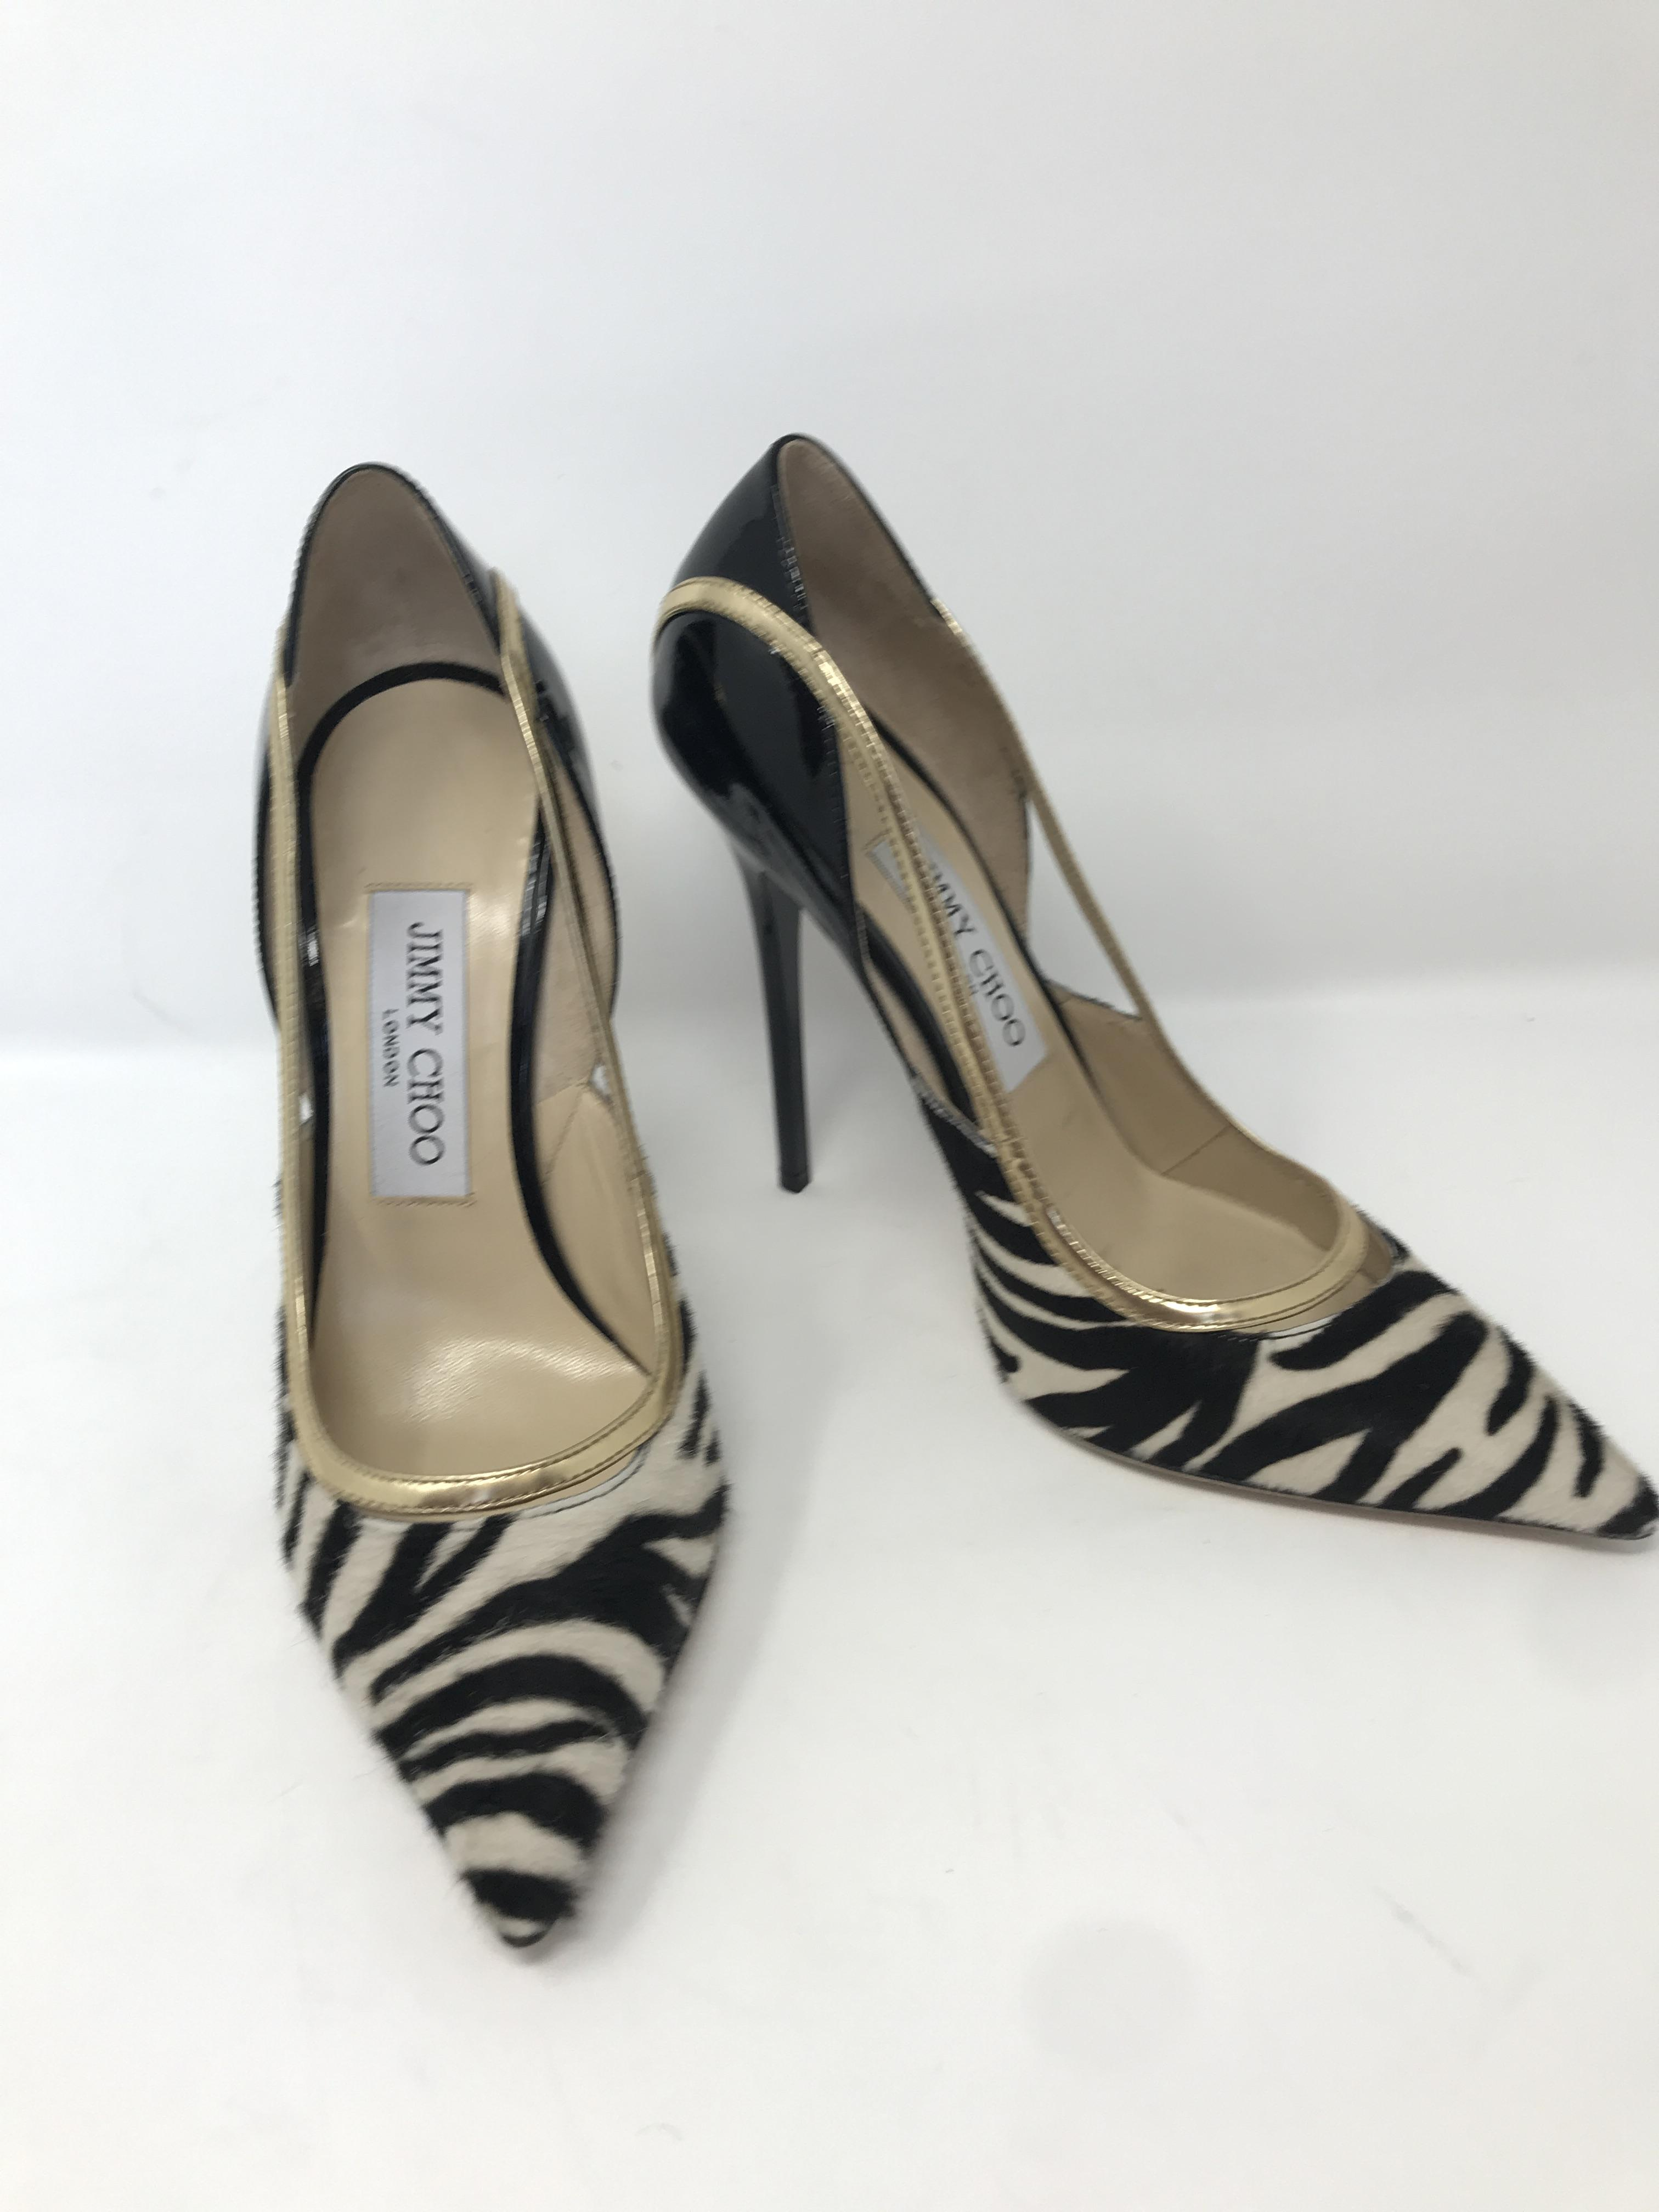 Jimmy Choo zebra Purses, Handbags Price: $299.99